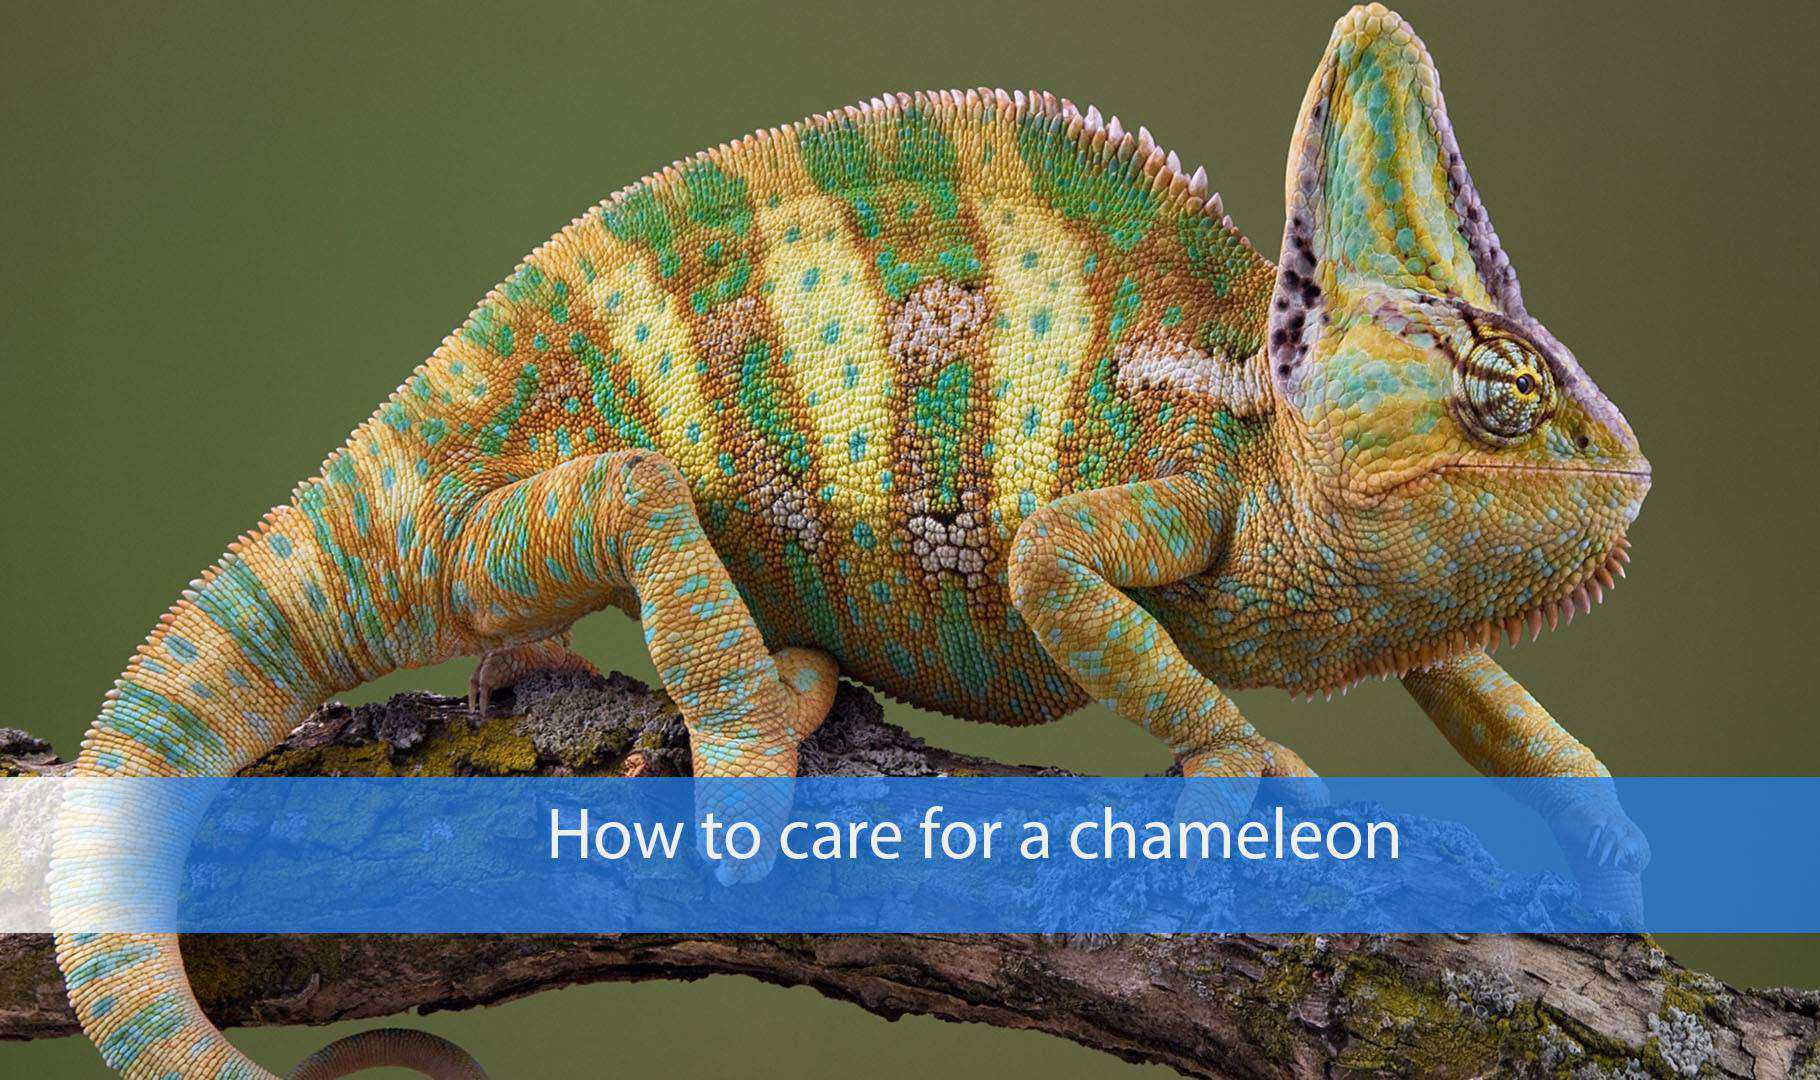 How to best care for a chameleon?